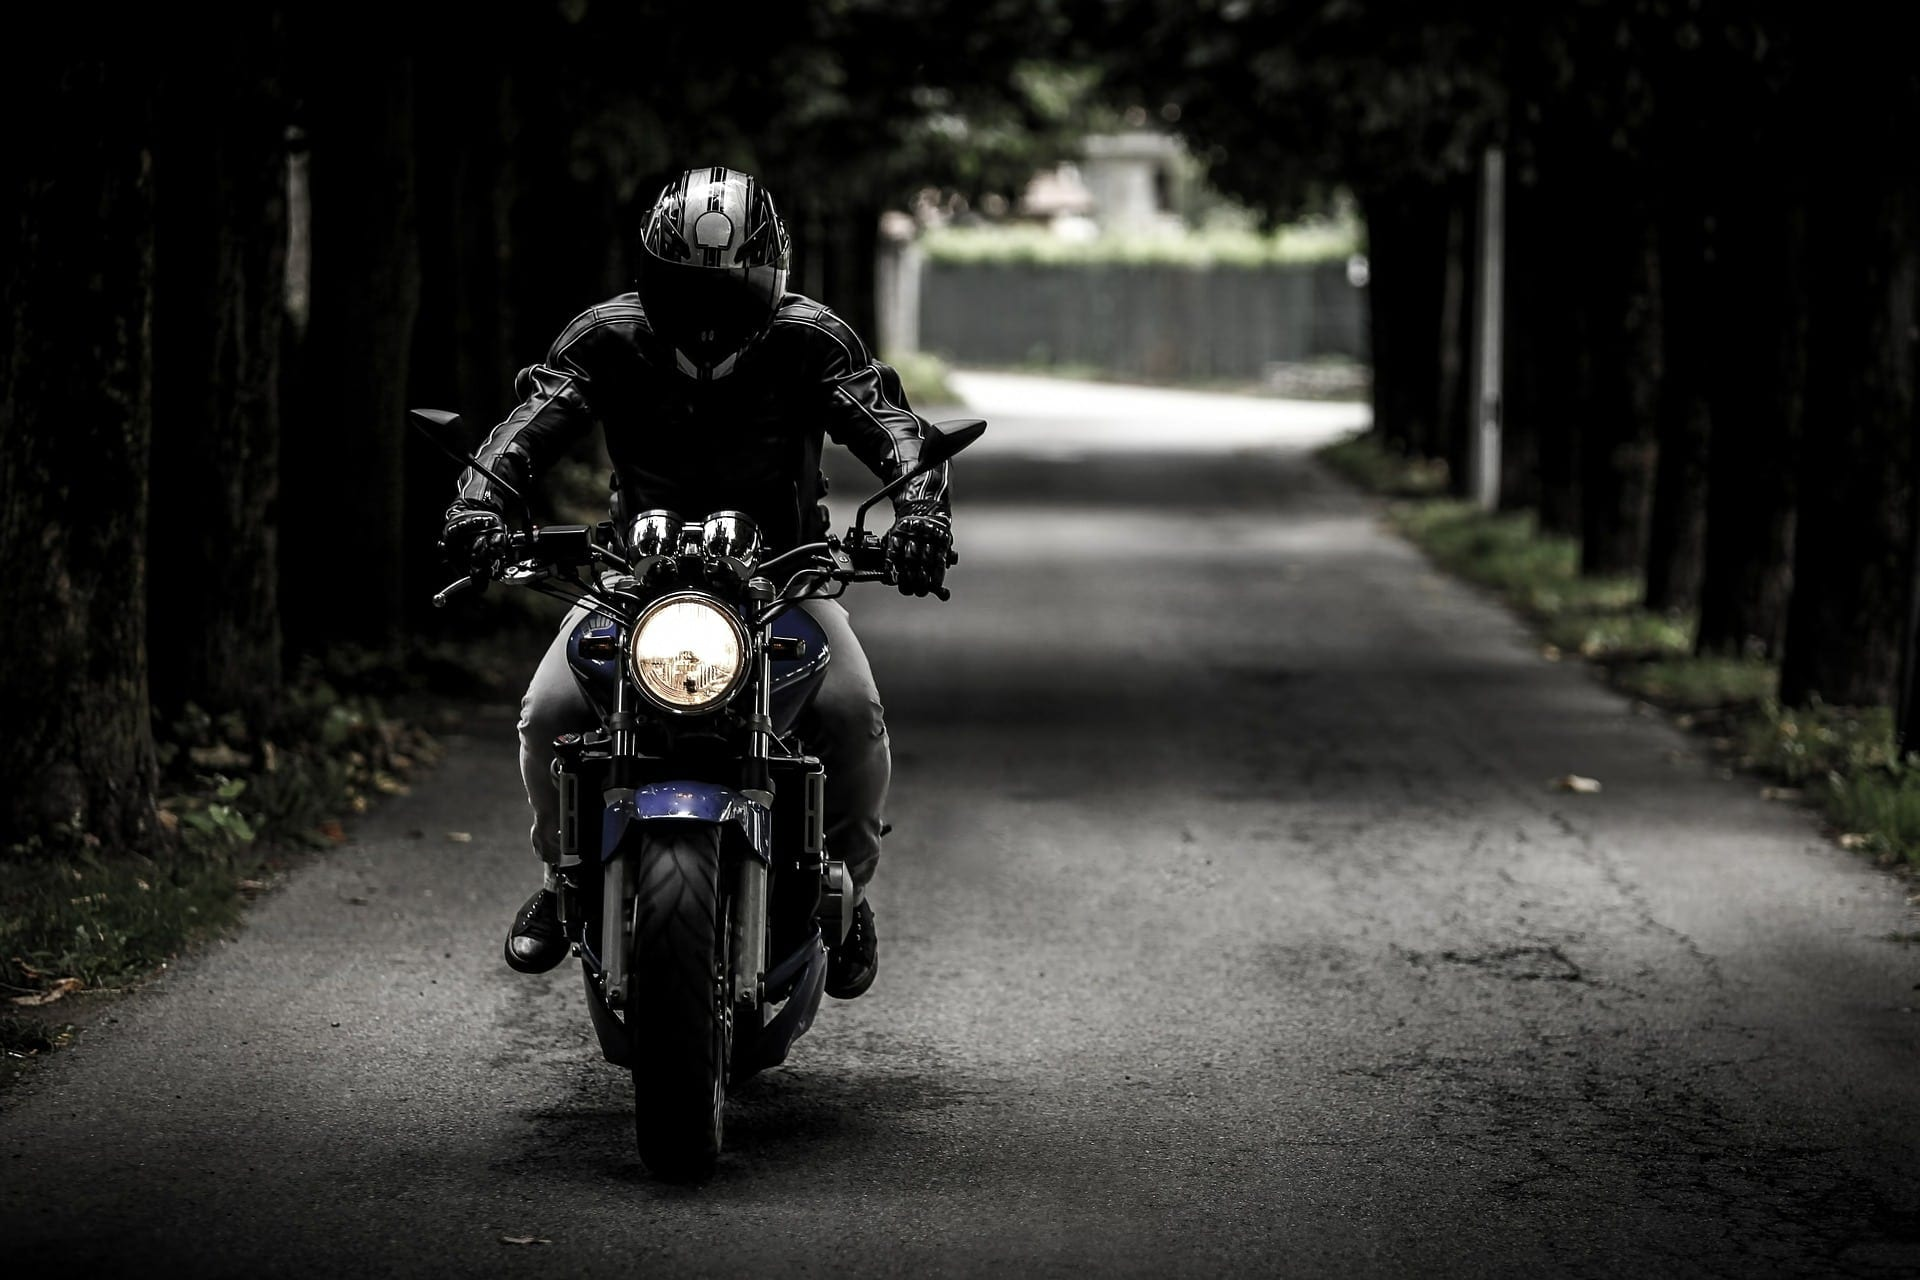 Motorcyclist Riding His Motorcycle Through An Alley Stock Photo